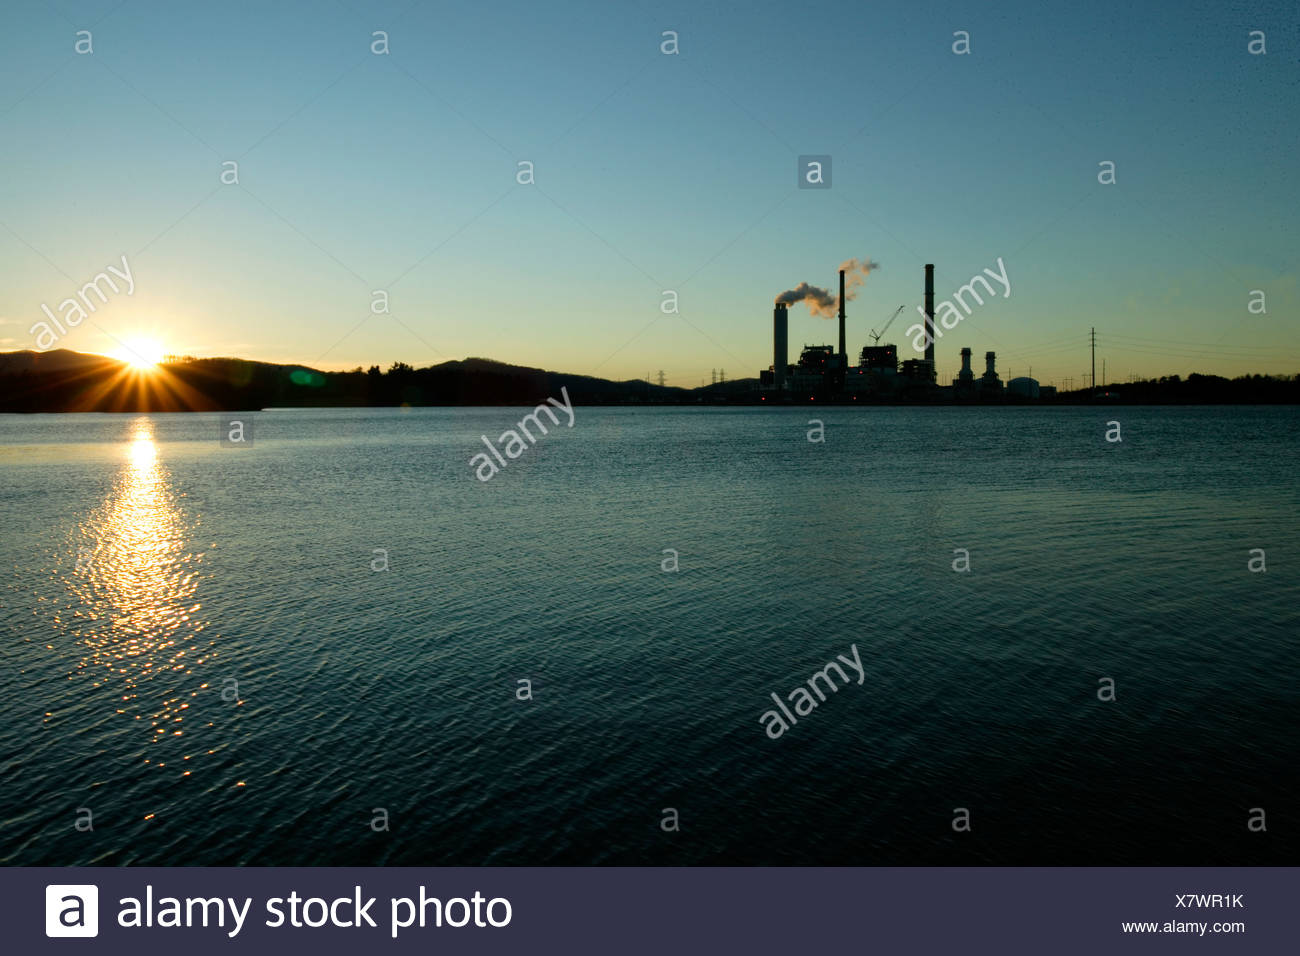 Sunset over Progress Energy's Lake Julian Power Plant and its new scrubber stack in South Asheville, NC. - Stock Image